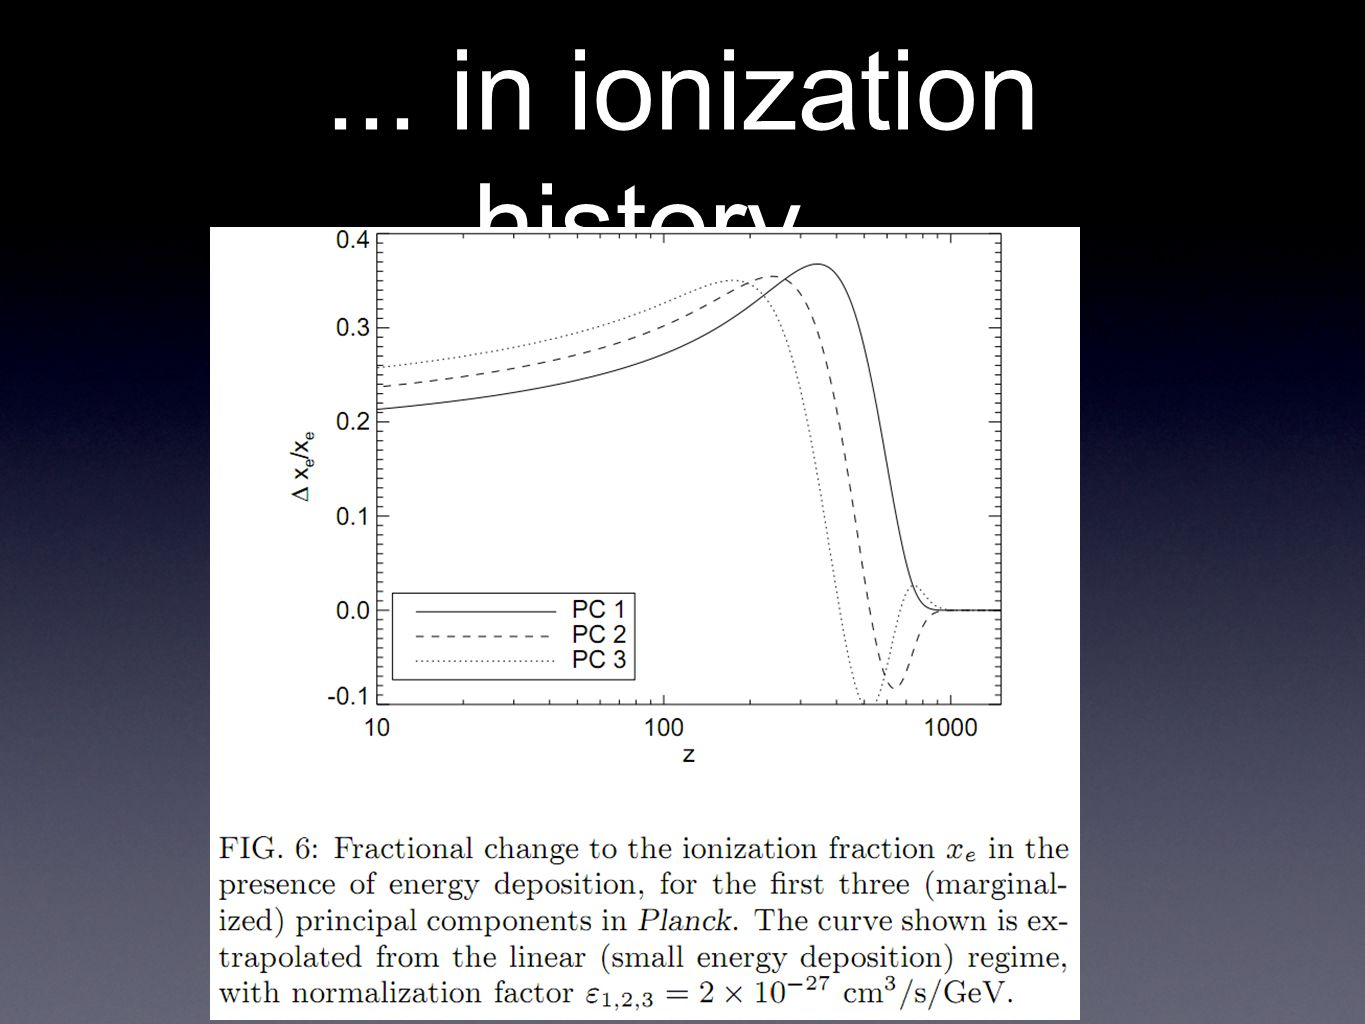 ... in ionization history...